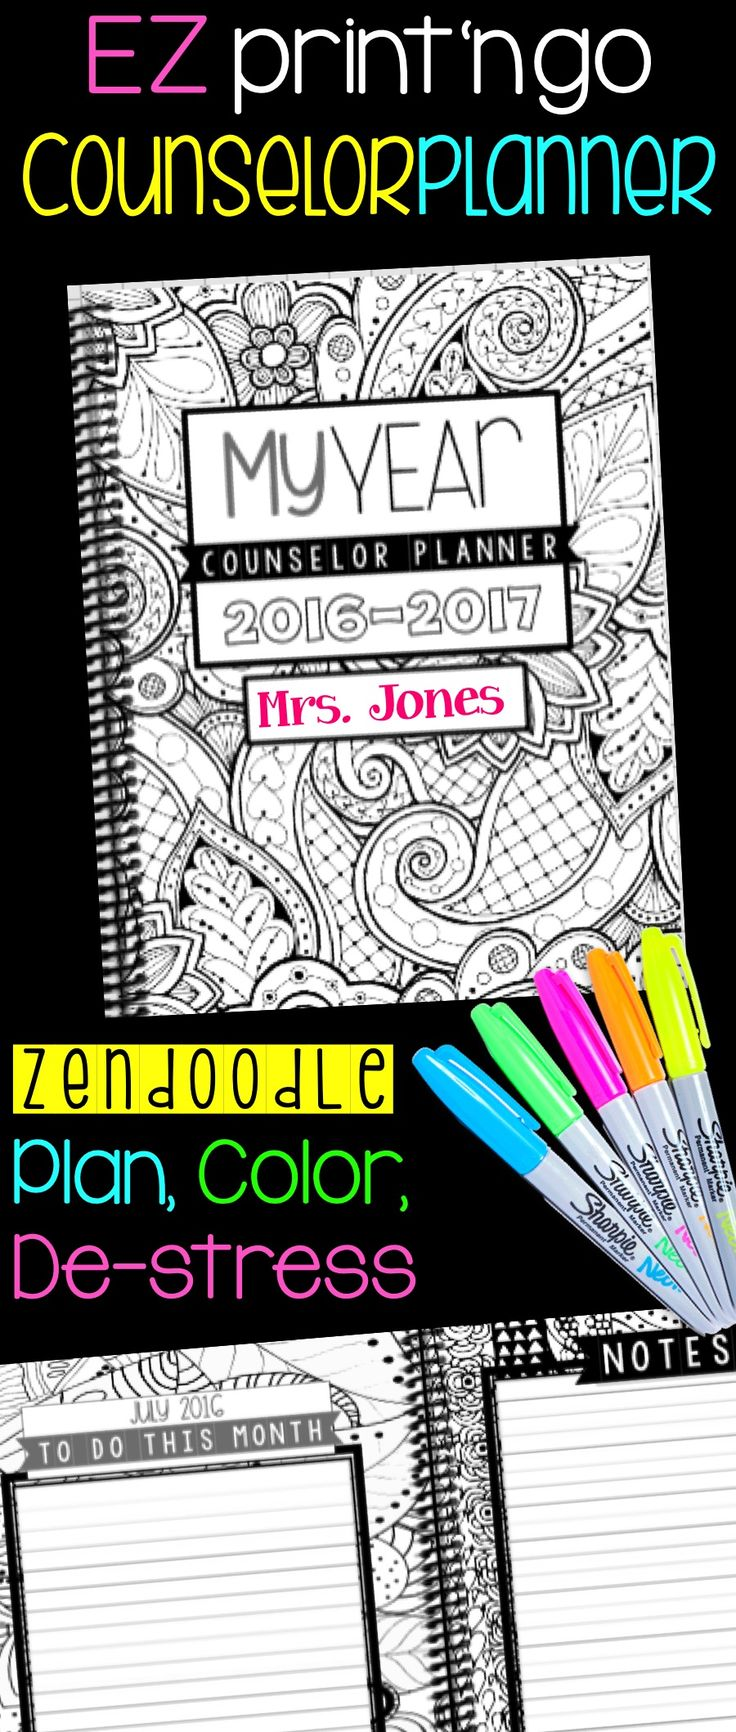 Coloring book for notability - The Zentangle Designs Allow You To Color Your Way